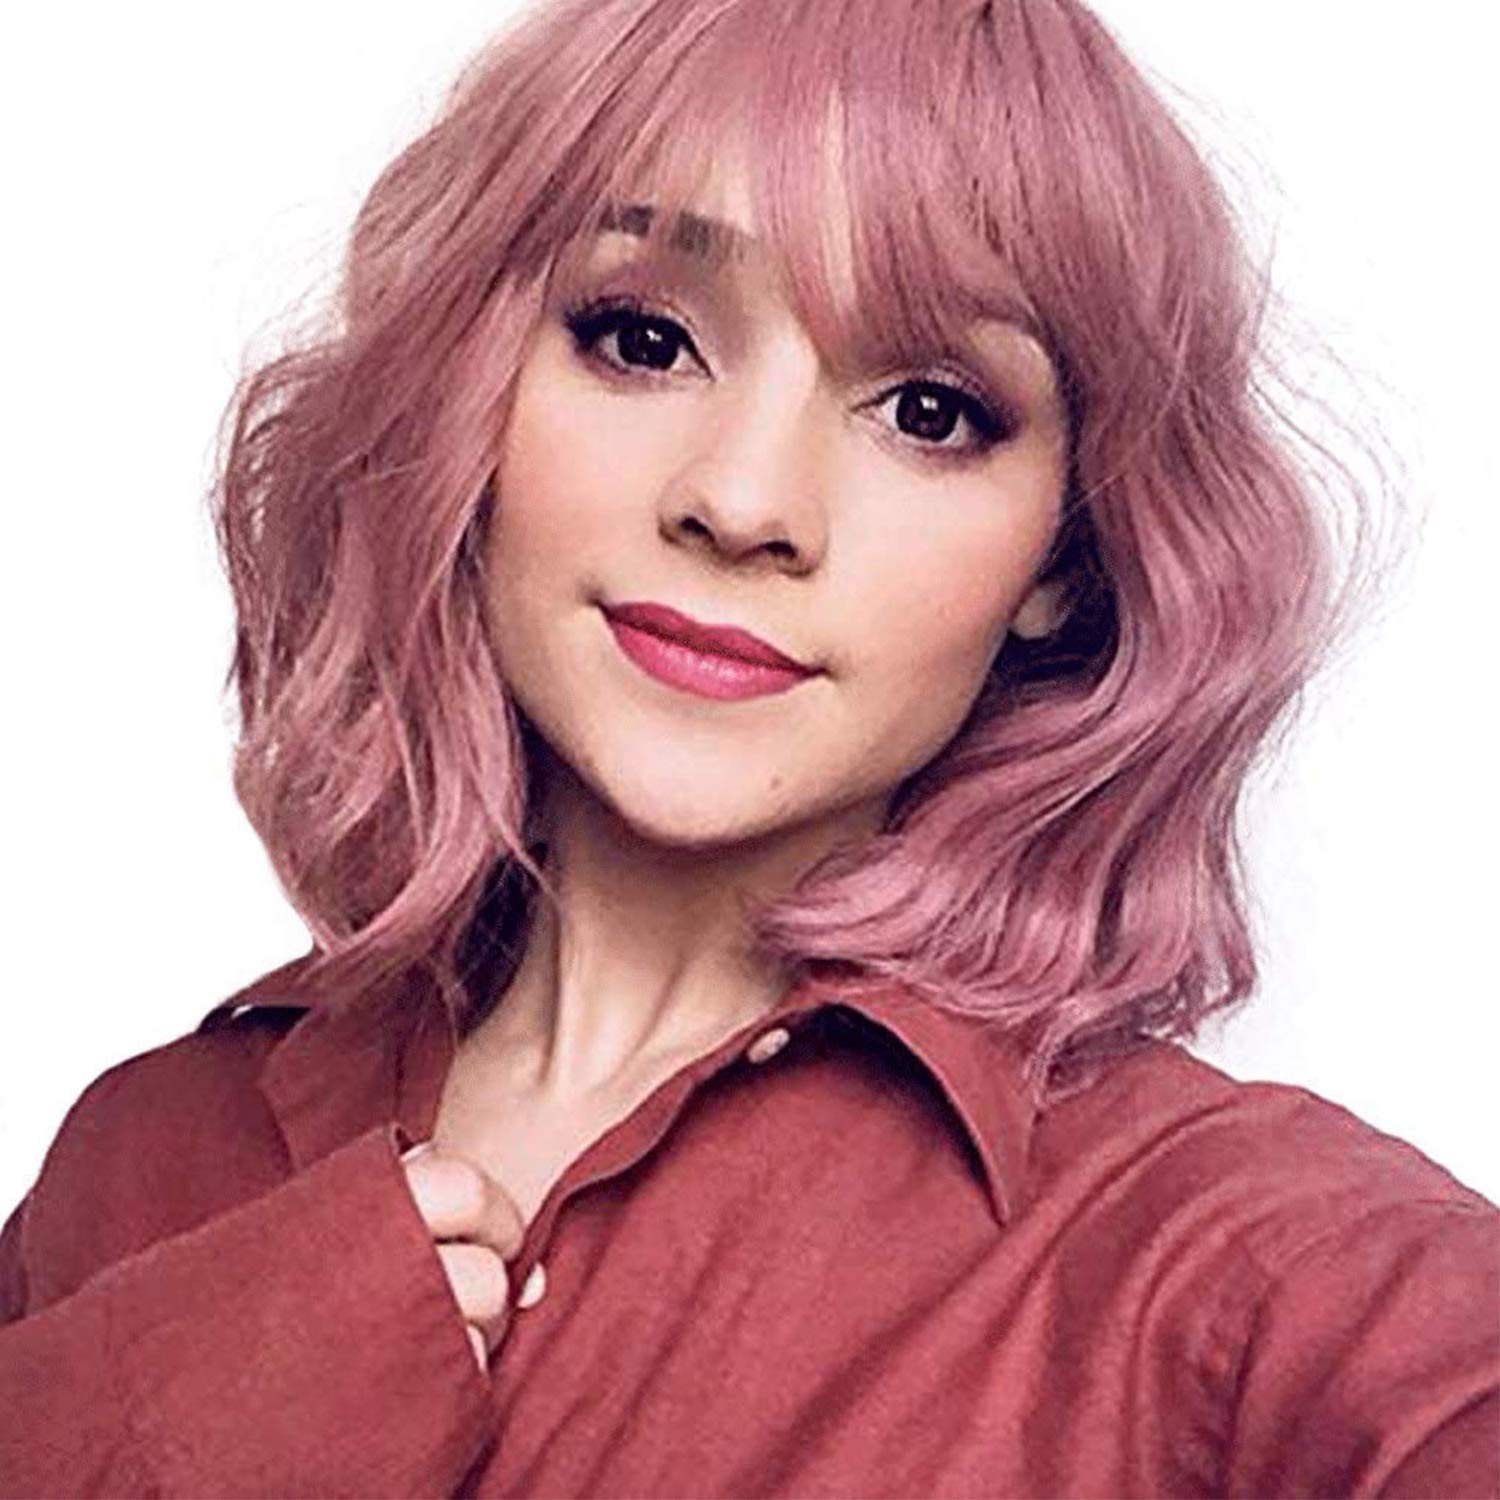 Iciwueen Short Bob Wigs for Women Black Straight Wig with Bangs Natural Looking Heat Resistant Premium Synthetic Wig for Girls Lady Cosplay Party Daily Wear